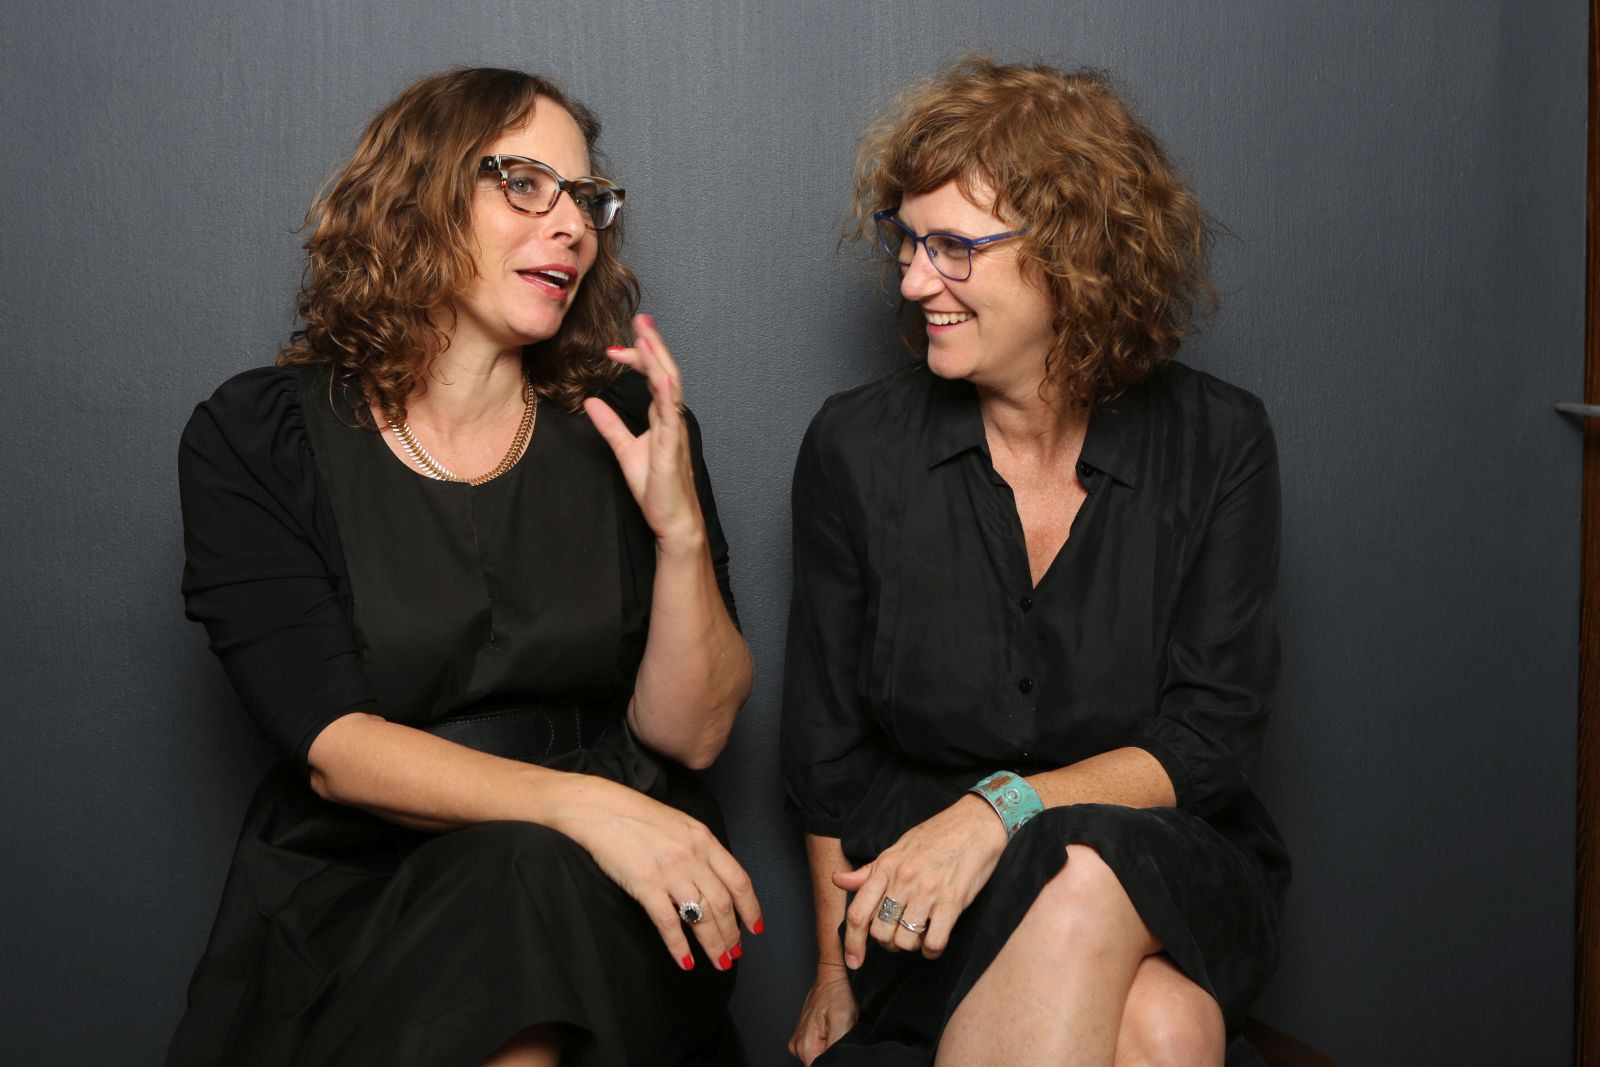 Yifat Anzelevich and Anat Shperling, the moms and brains behind Toya-Play a Difference. Photo: courtesy